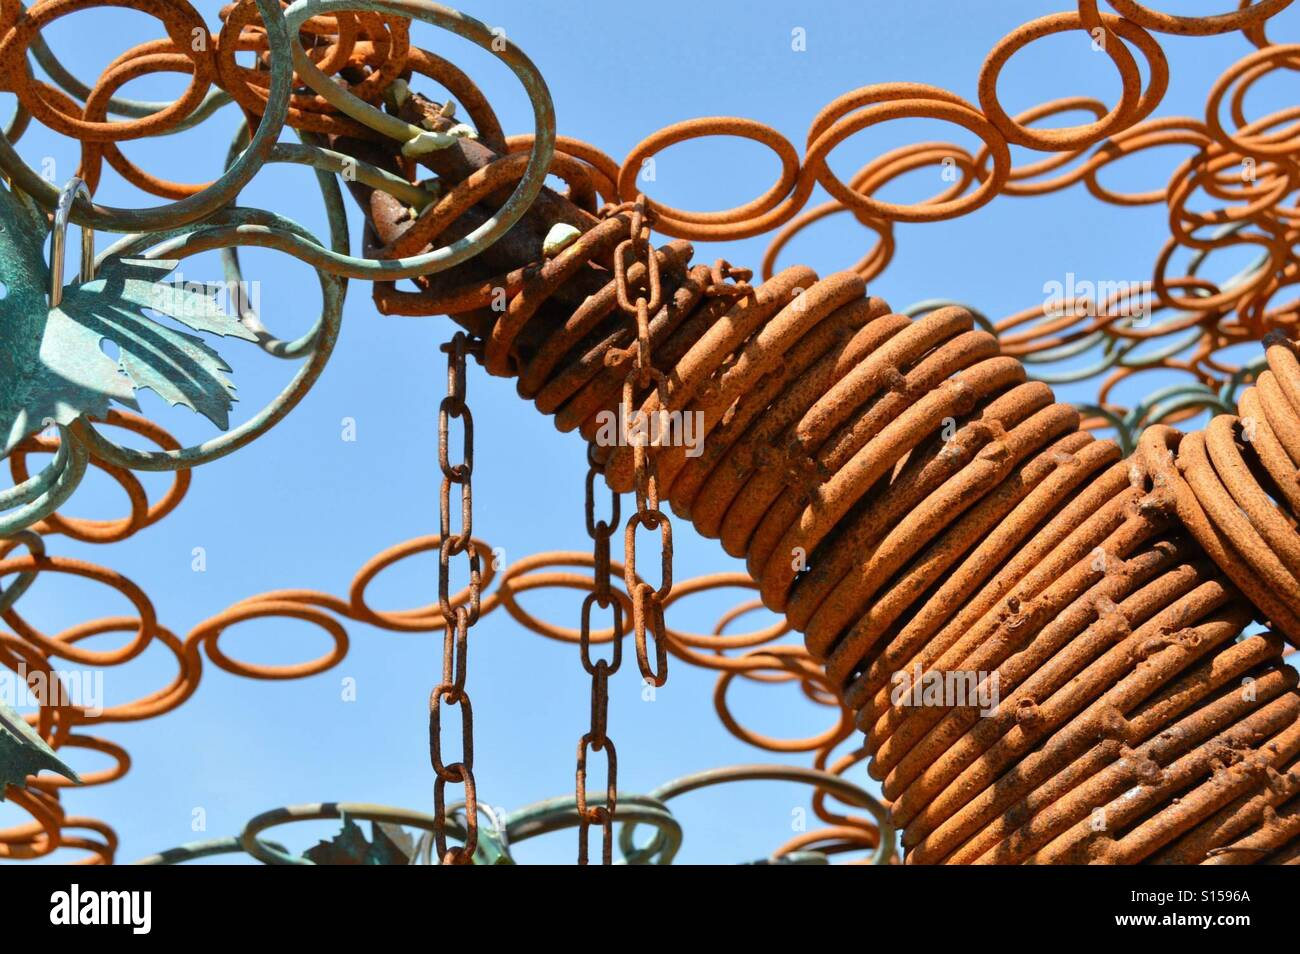 alamy stock photo rust rusty rings images photos image